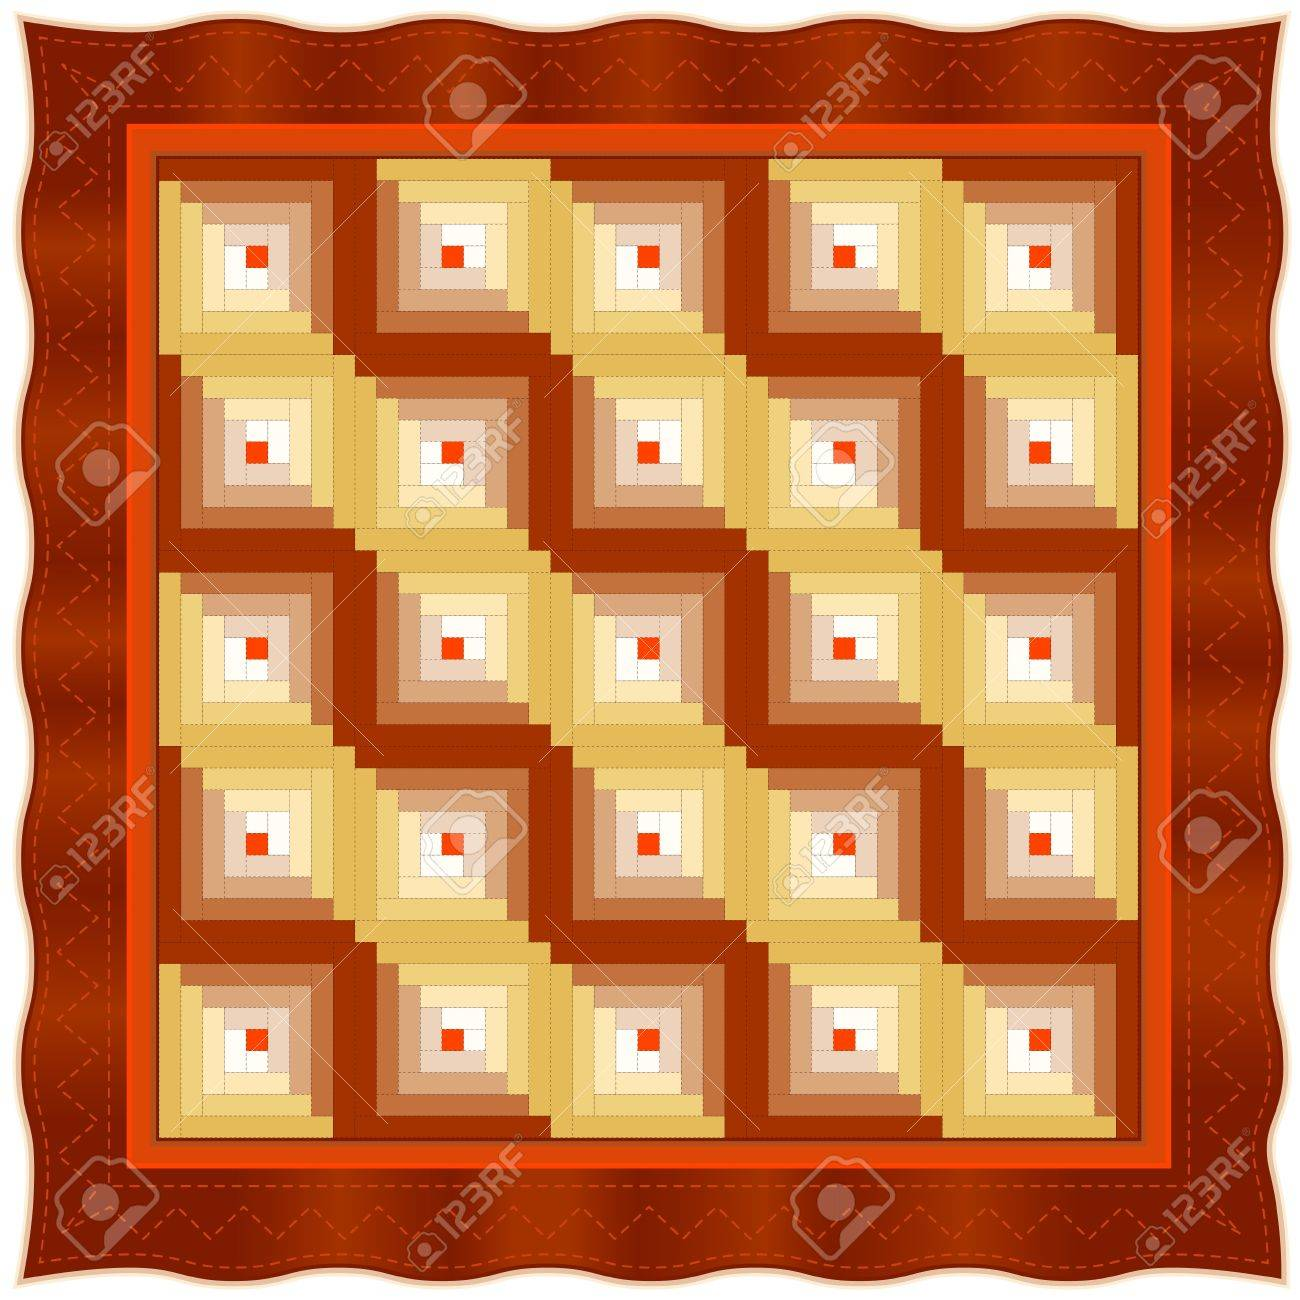 Quilt, Log Cabin Pattern, Straight Furrow Design, traditional stitched patchwork Stock Vector - 13607160